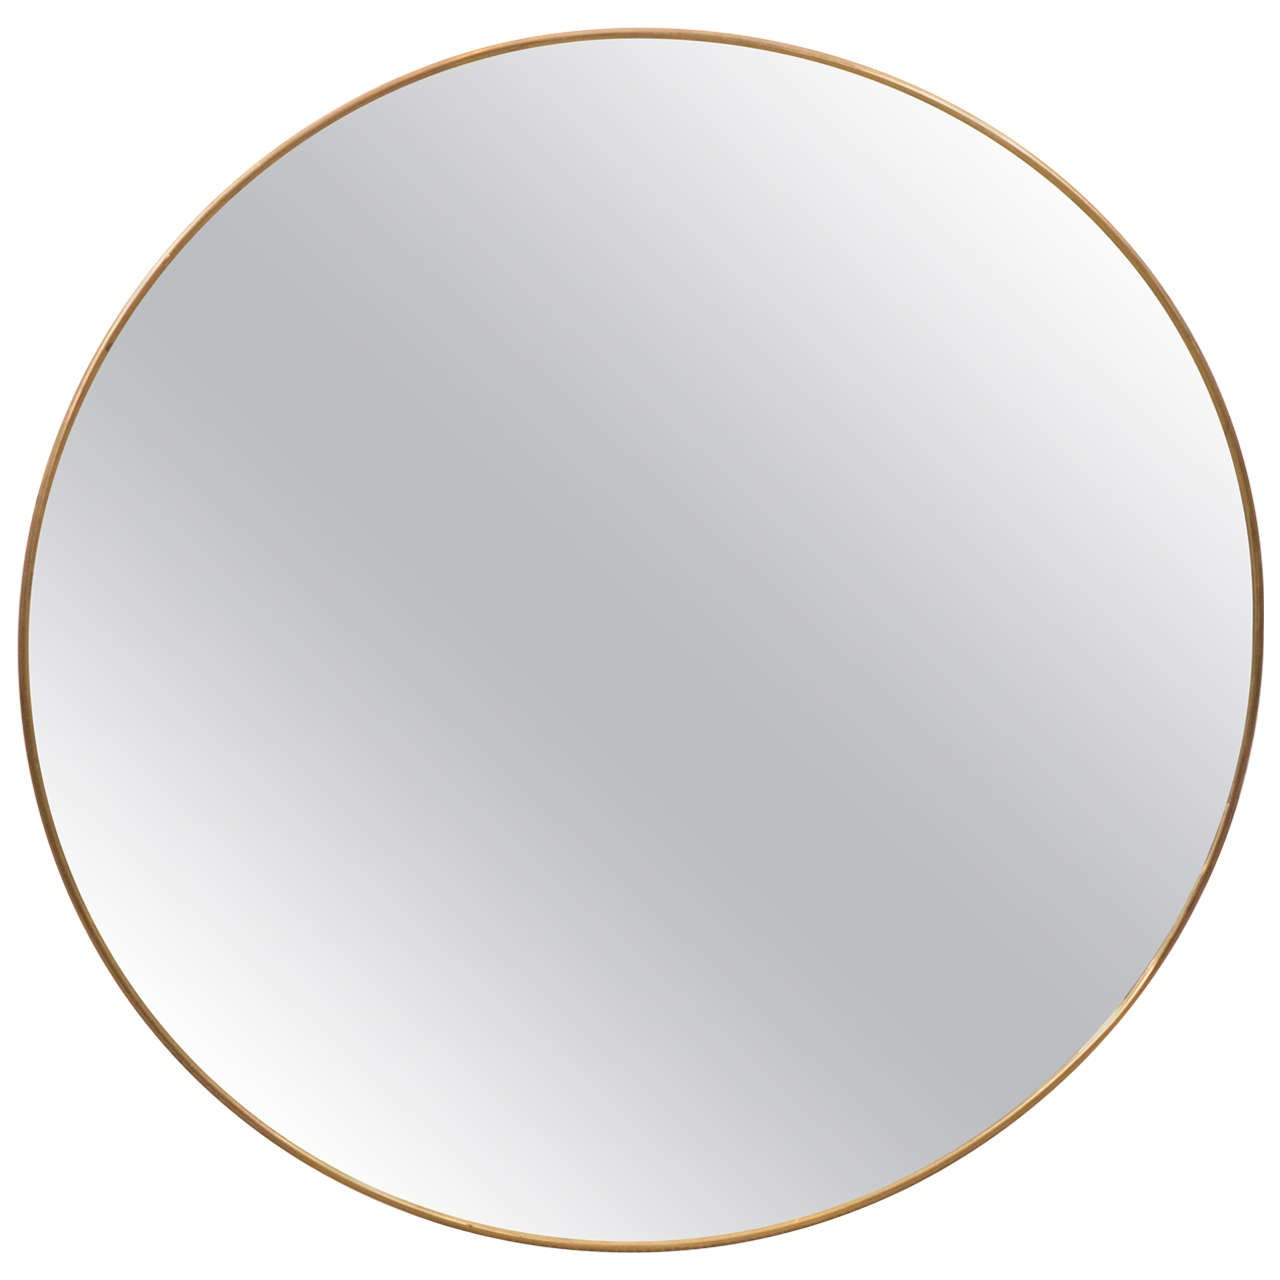 Italian modernist brass framed round mirror 1950s at 1stdibs Round framed mirror